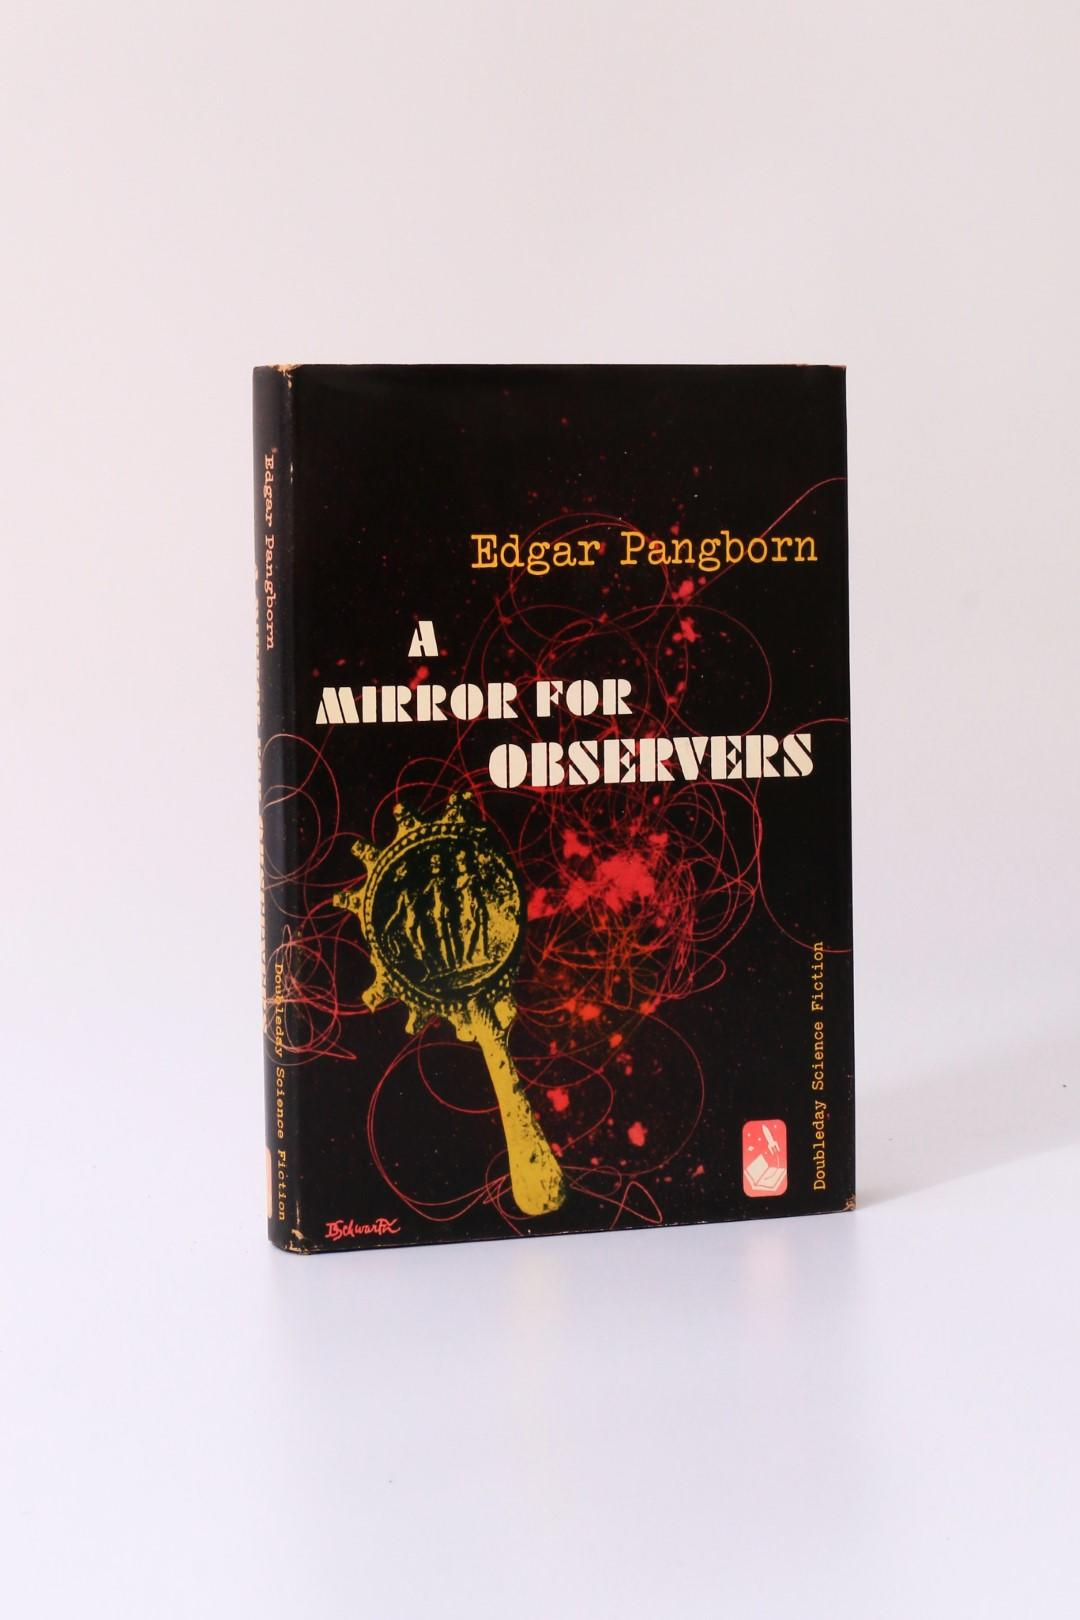 Edgar Pangborn - A Mirror for Observers - Doubleday, 1954, First Edition.